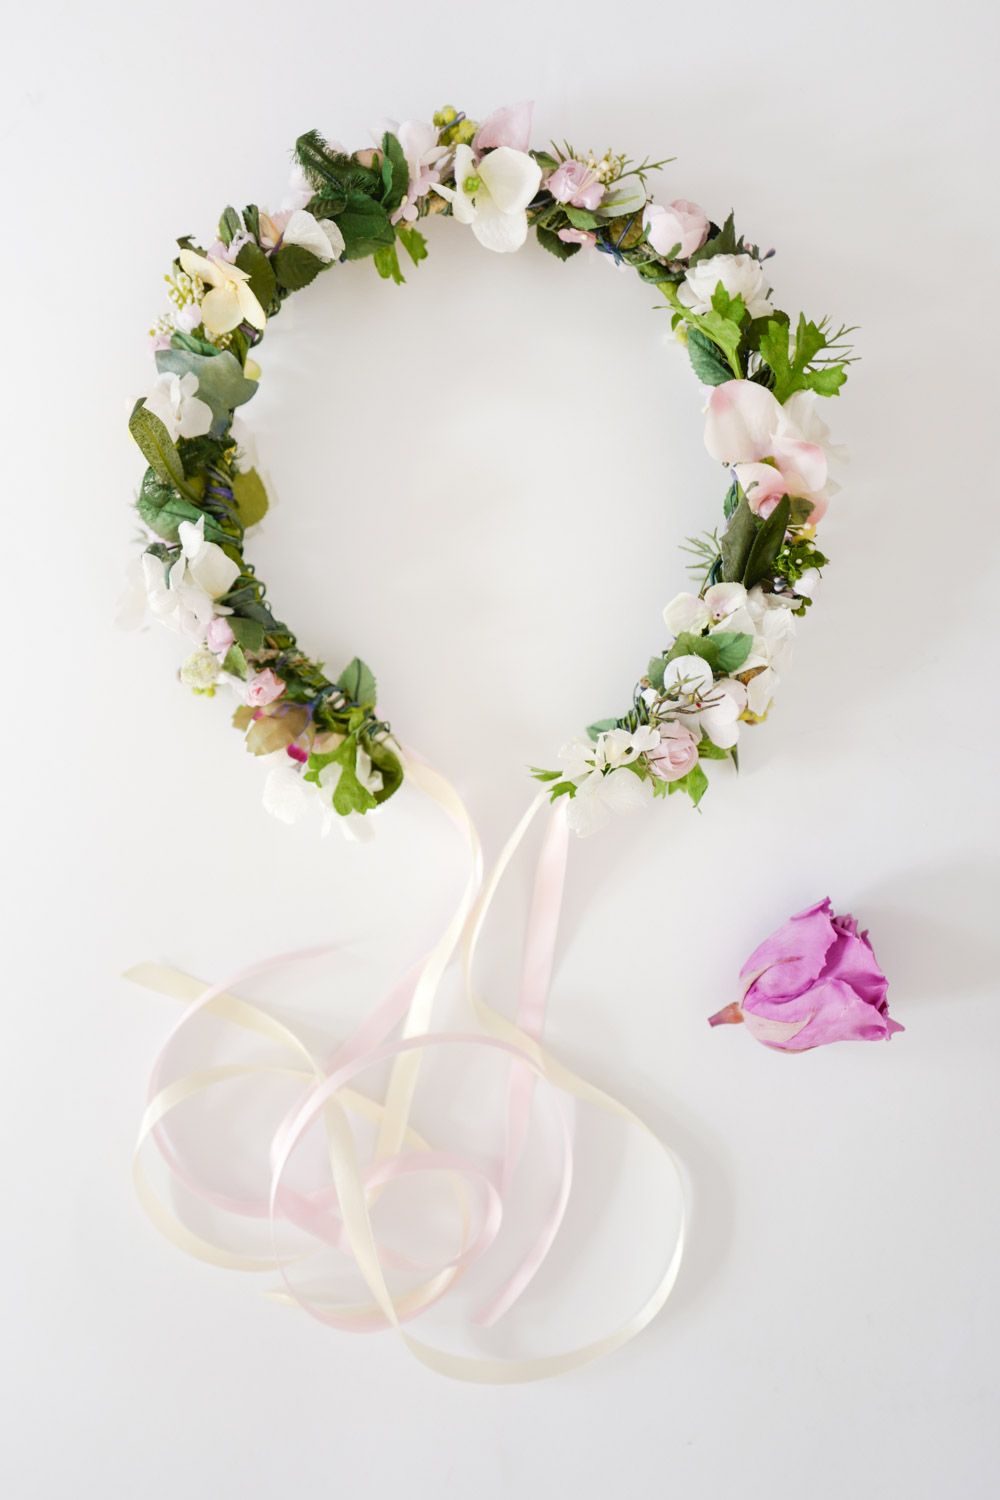 We-Are-Flowergirls_Brides_SS17_Flowercrown_[L1010881].jpg